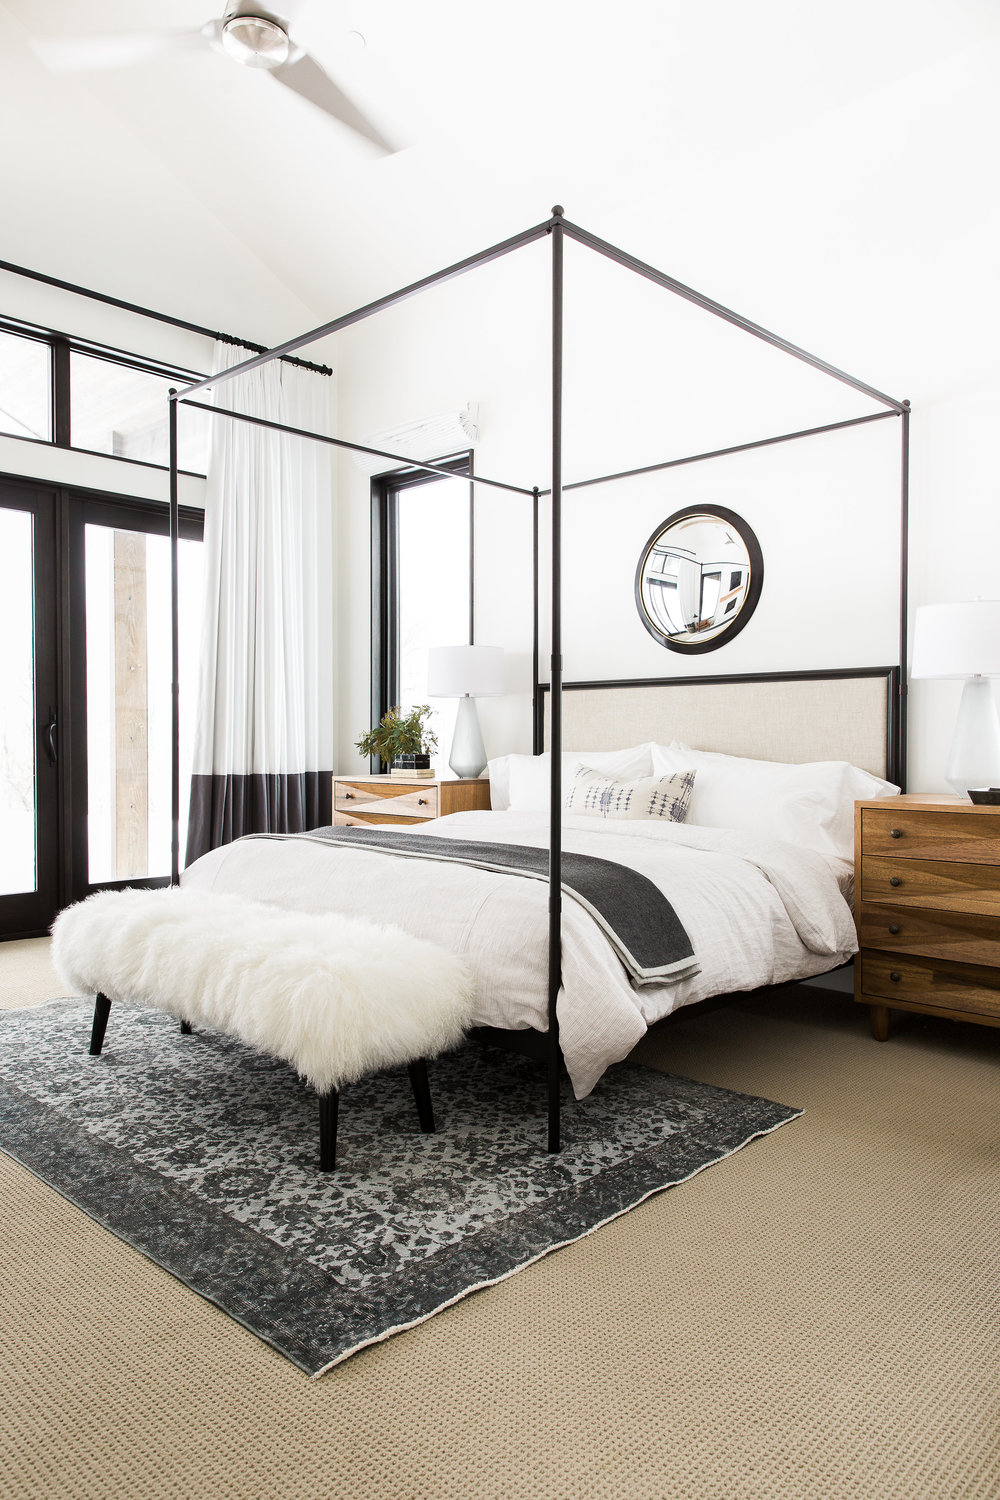 Mountain Modern Home Bedroom : canopy-bed-studio-apartment - designwebi.com